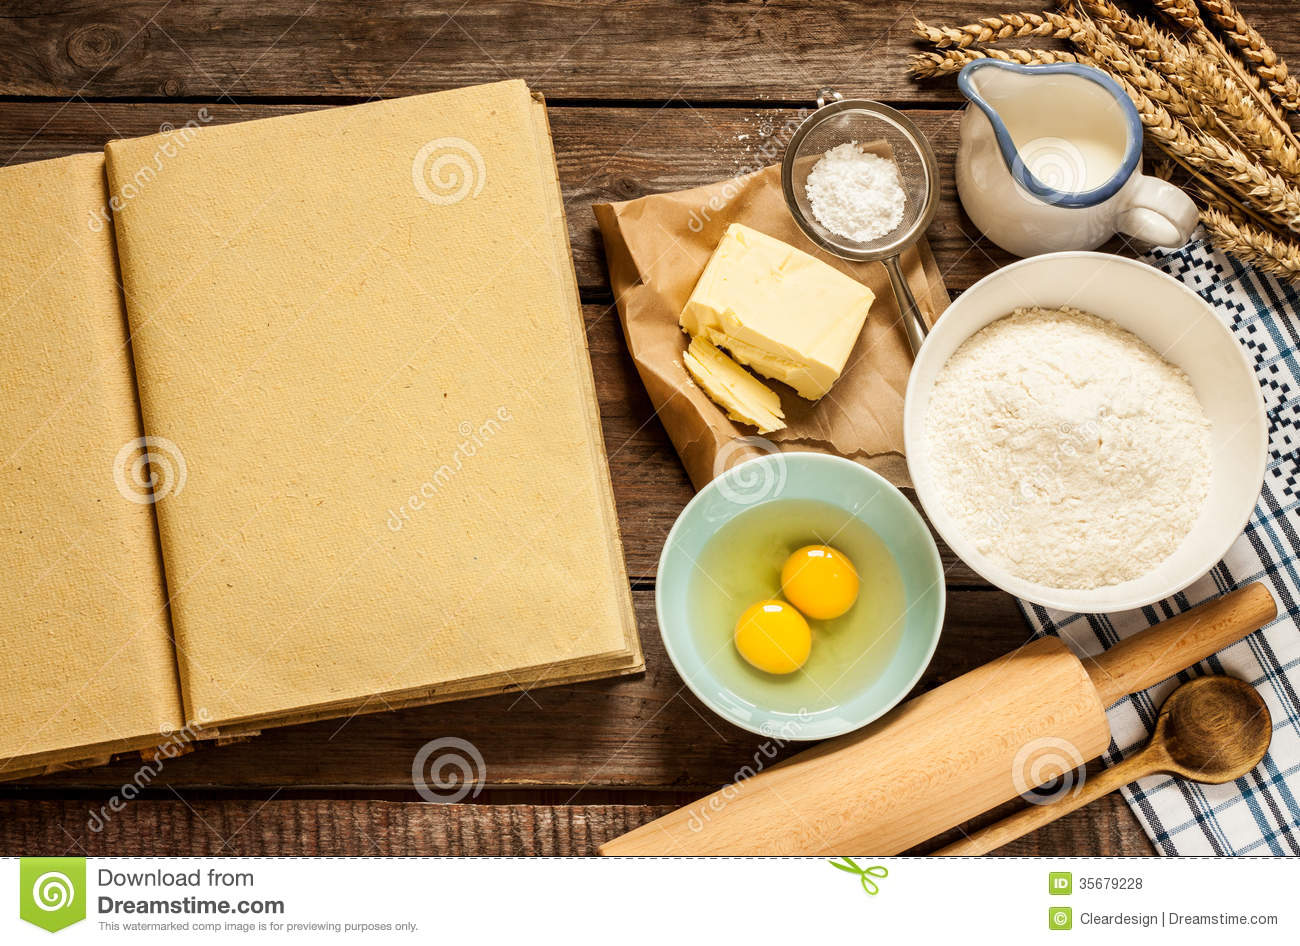 Rural Kitchen Baking Cake Ingredients And Blank Cook Book Royalty